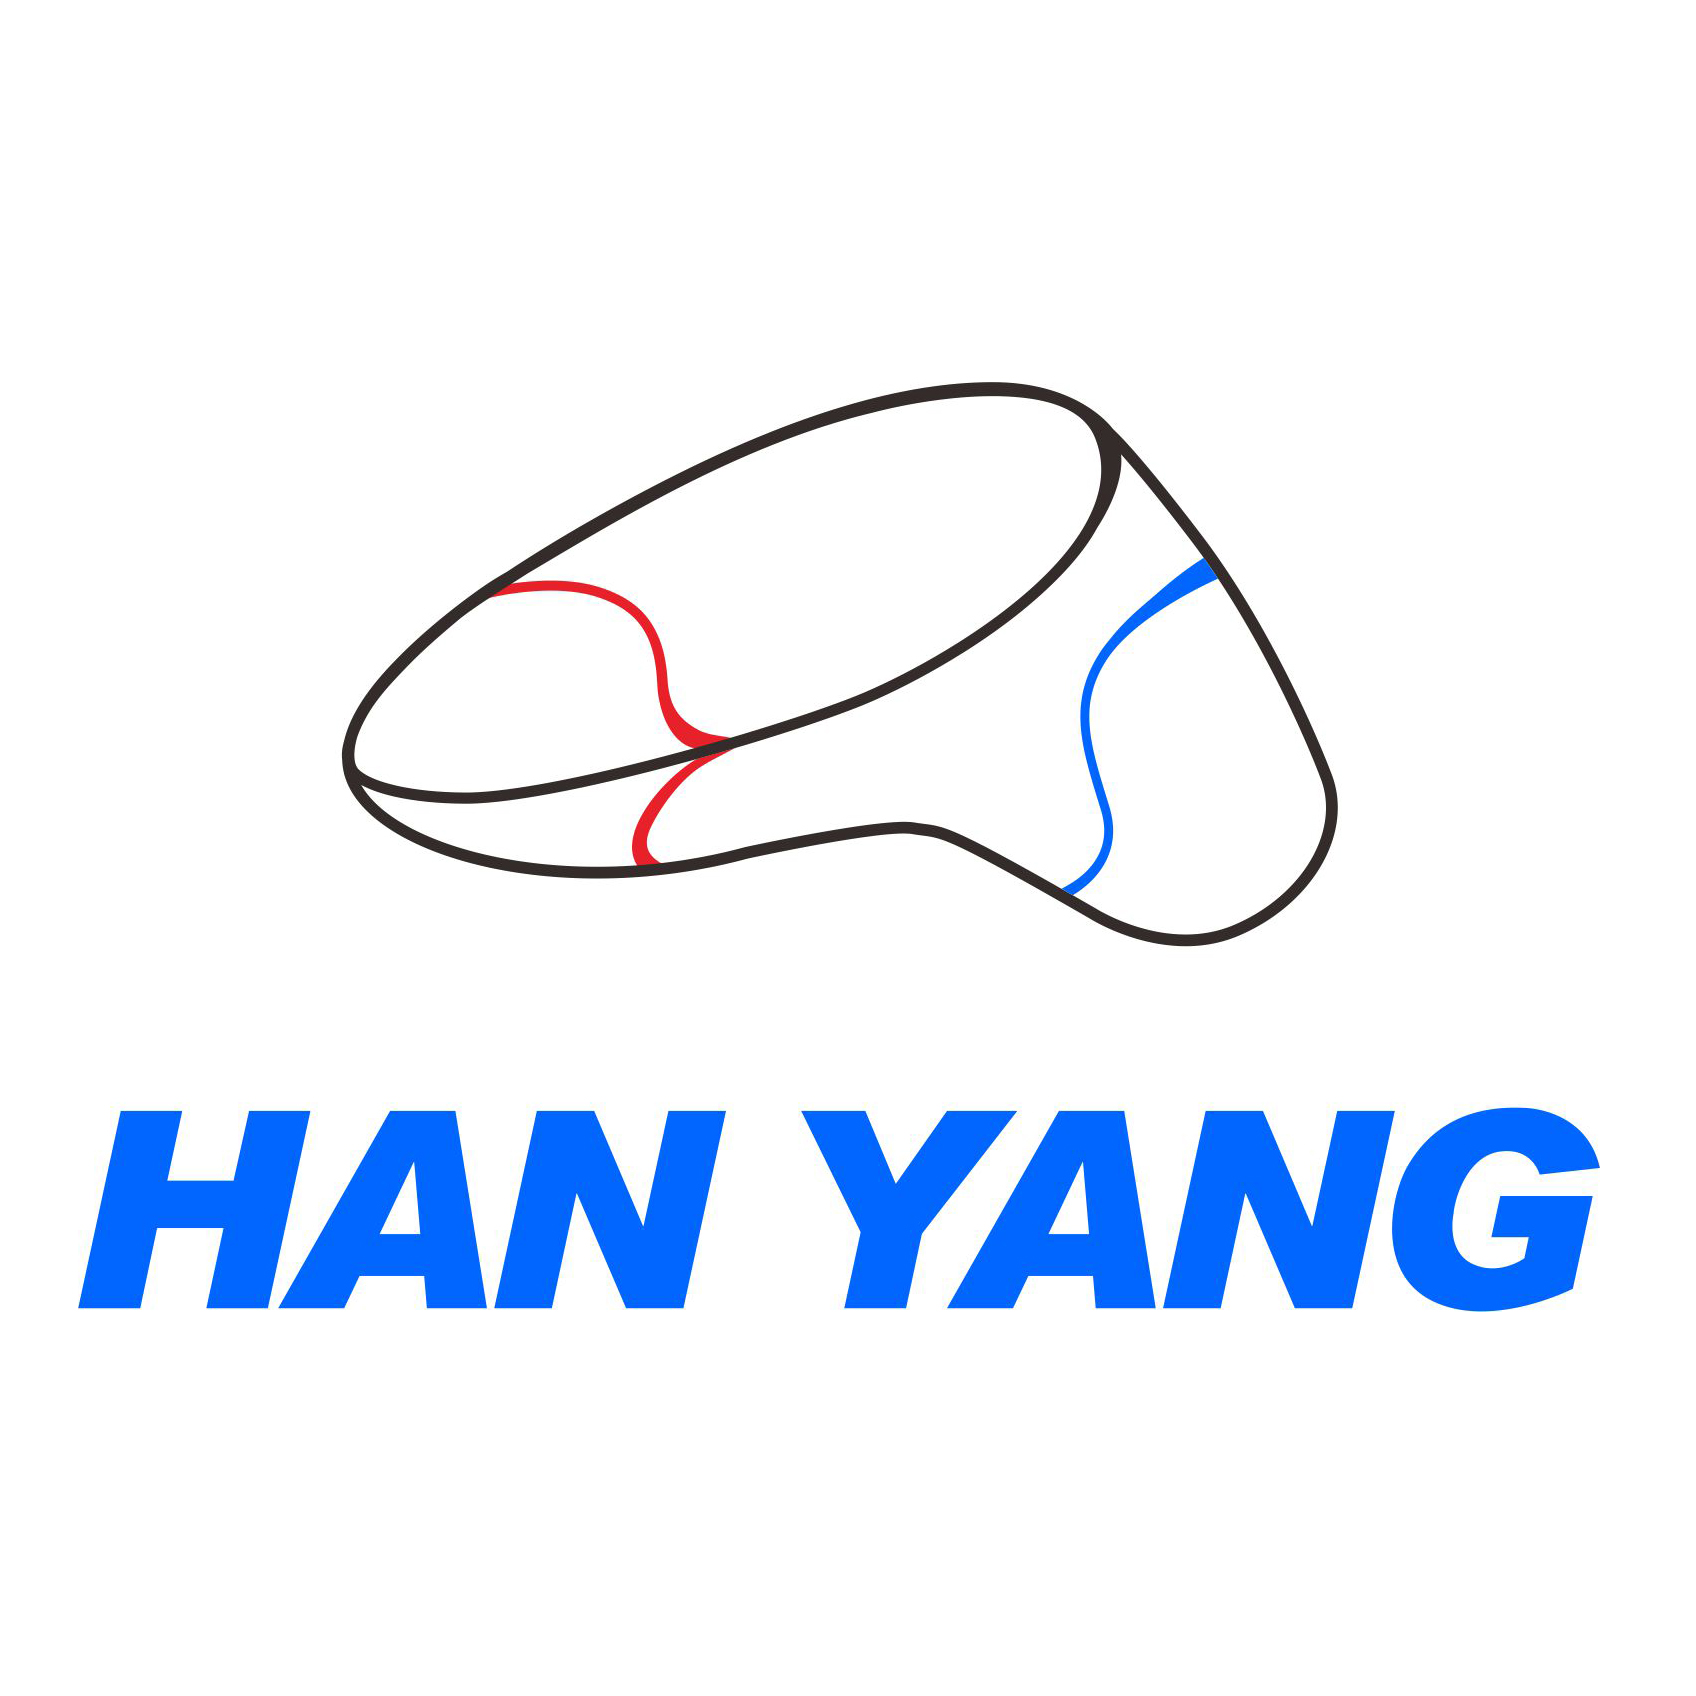 KAIPING HANYANG SANITARY WARE CO.,LTD